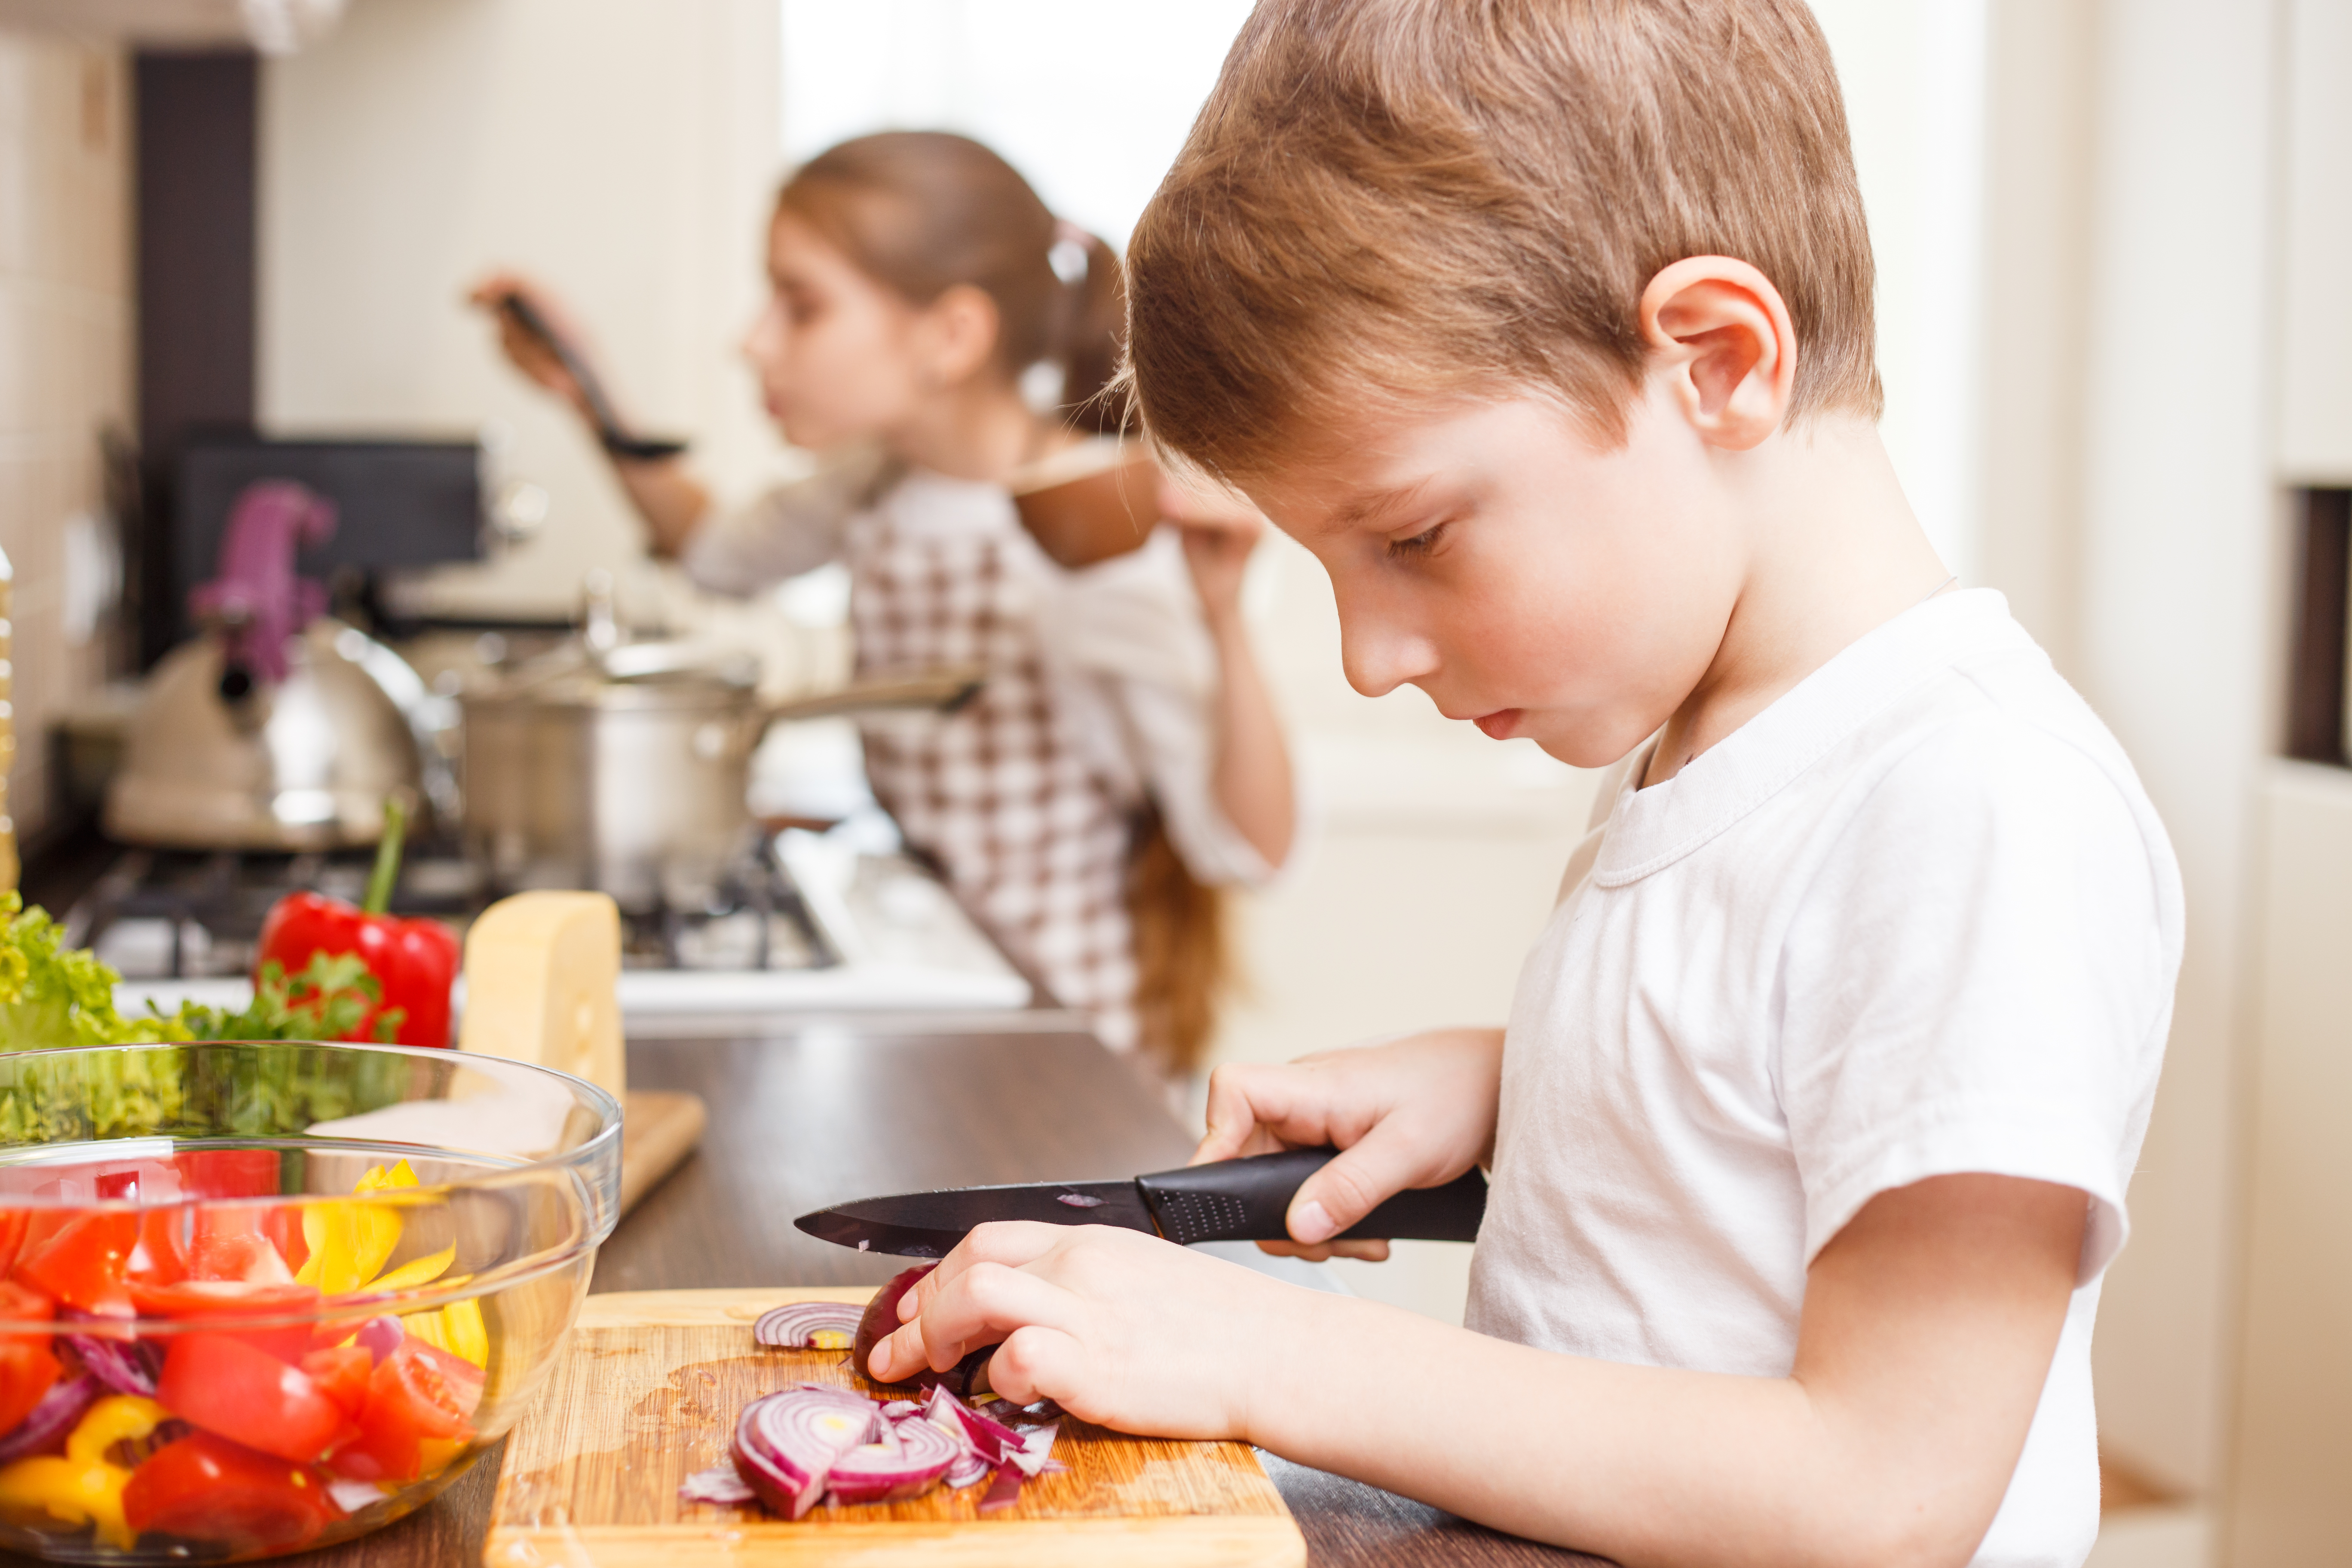 Kids Making Their Own Lunches